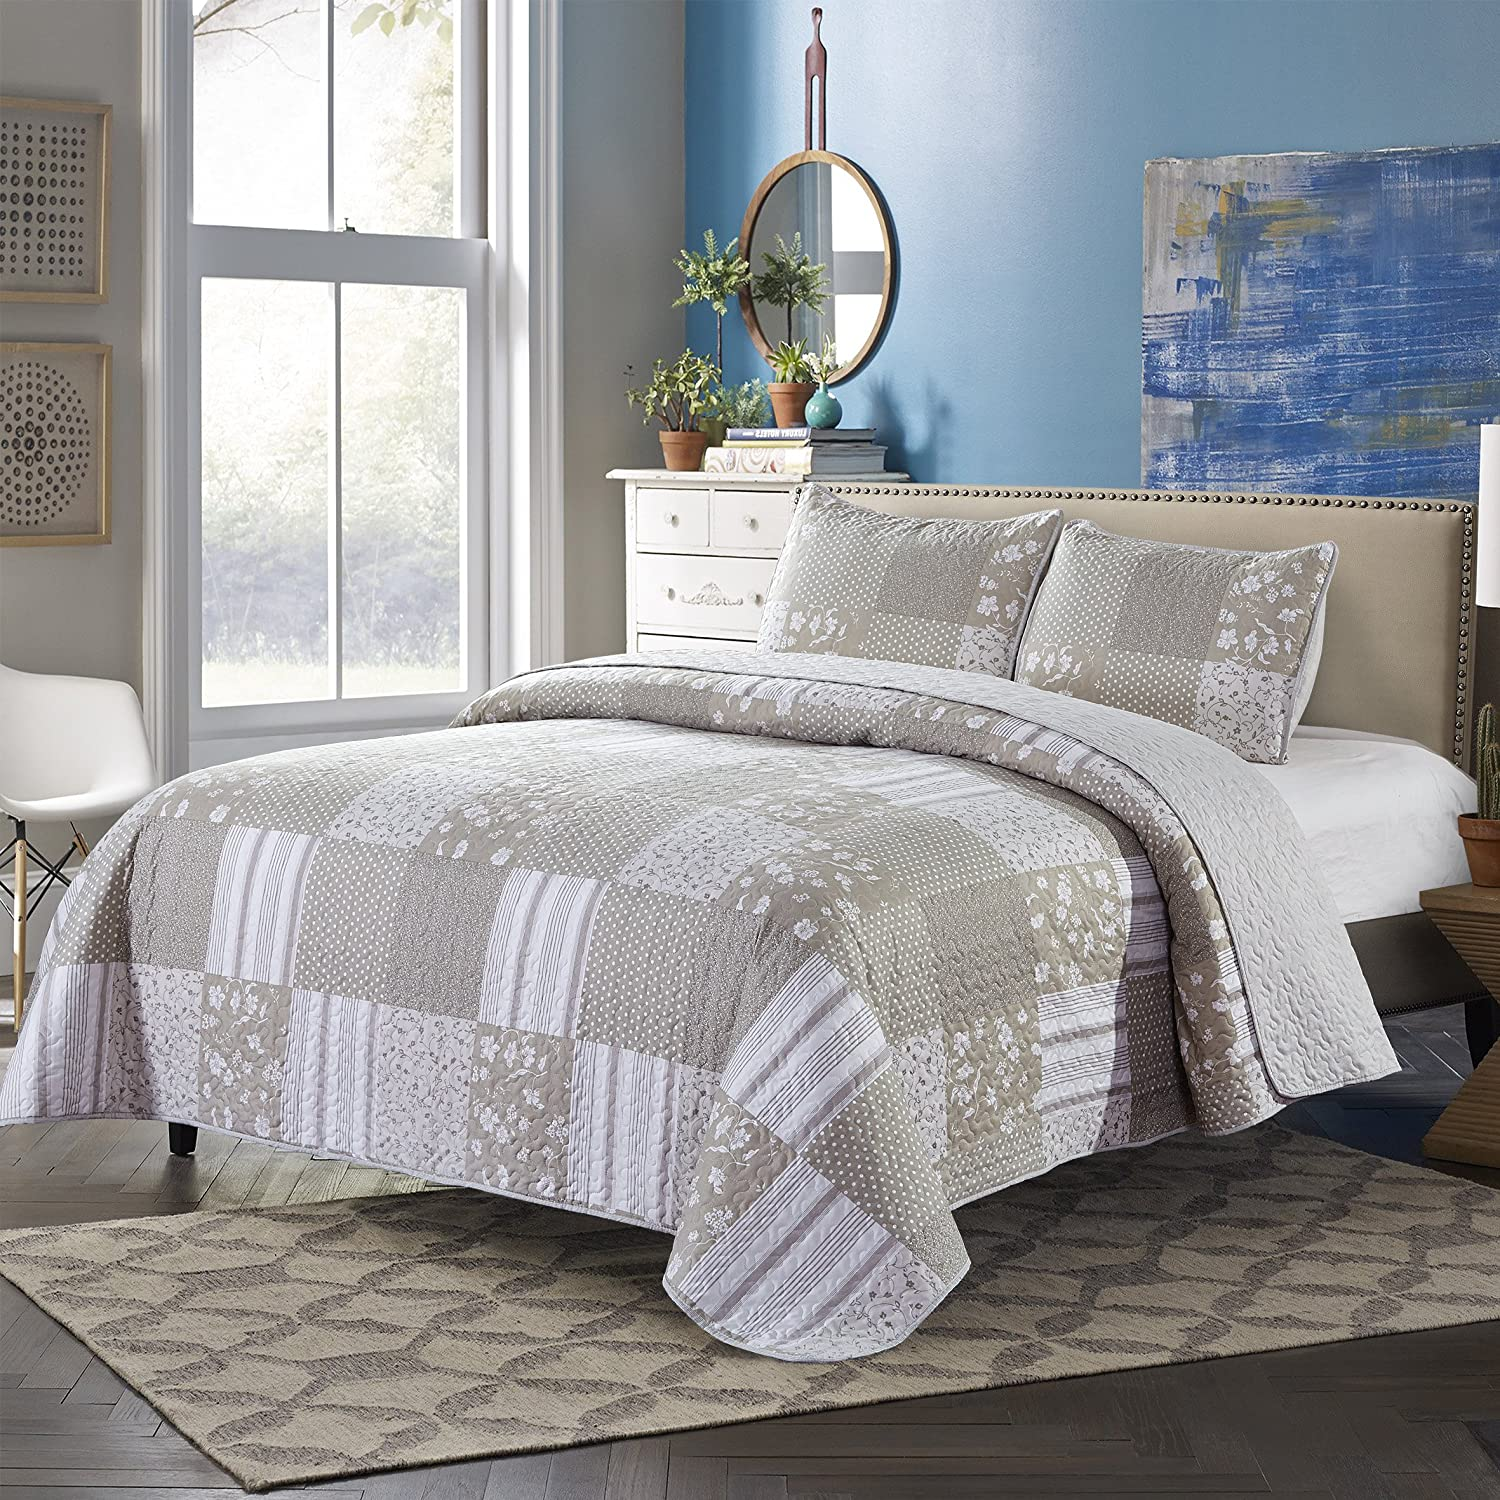 SLPR Silent Reverie 3-Piece Lightweight Printed Quilt Set (Queen